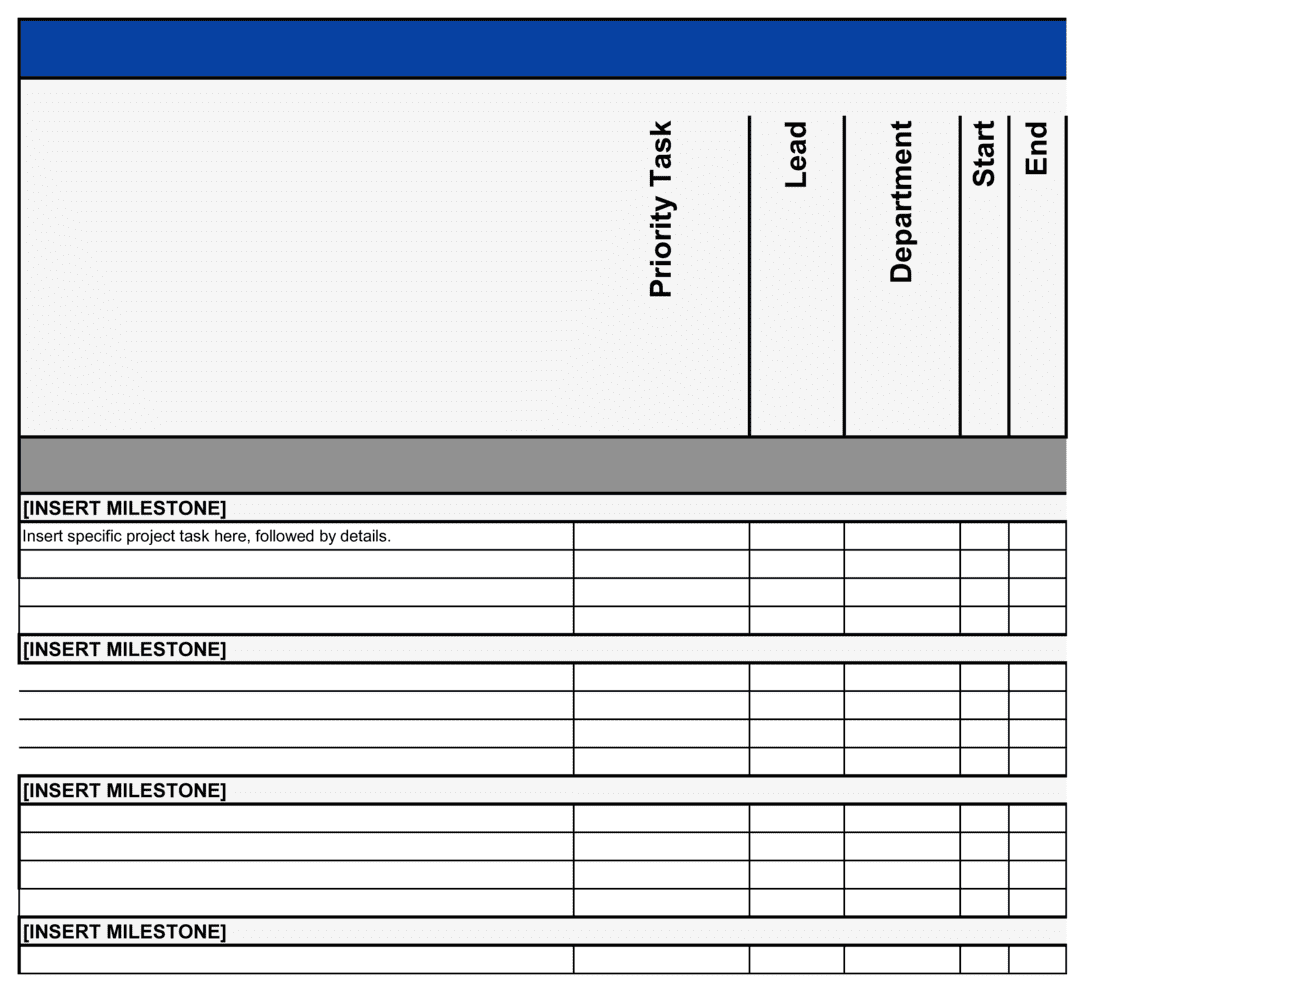 Business-in-a-Box's It Project Plan Template